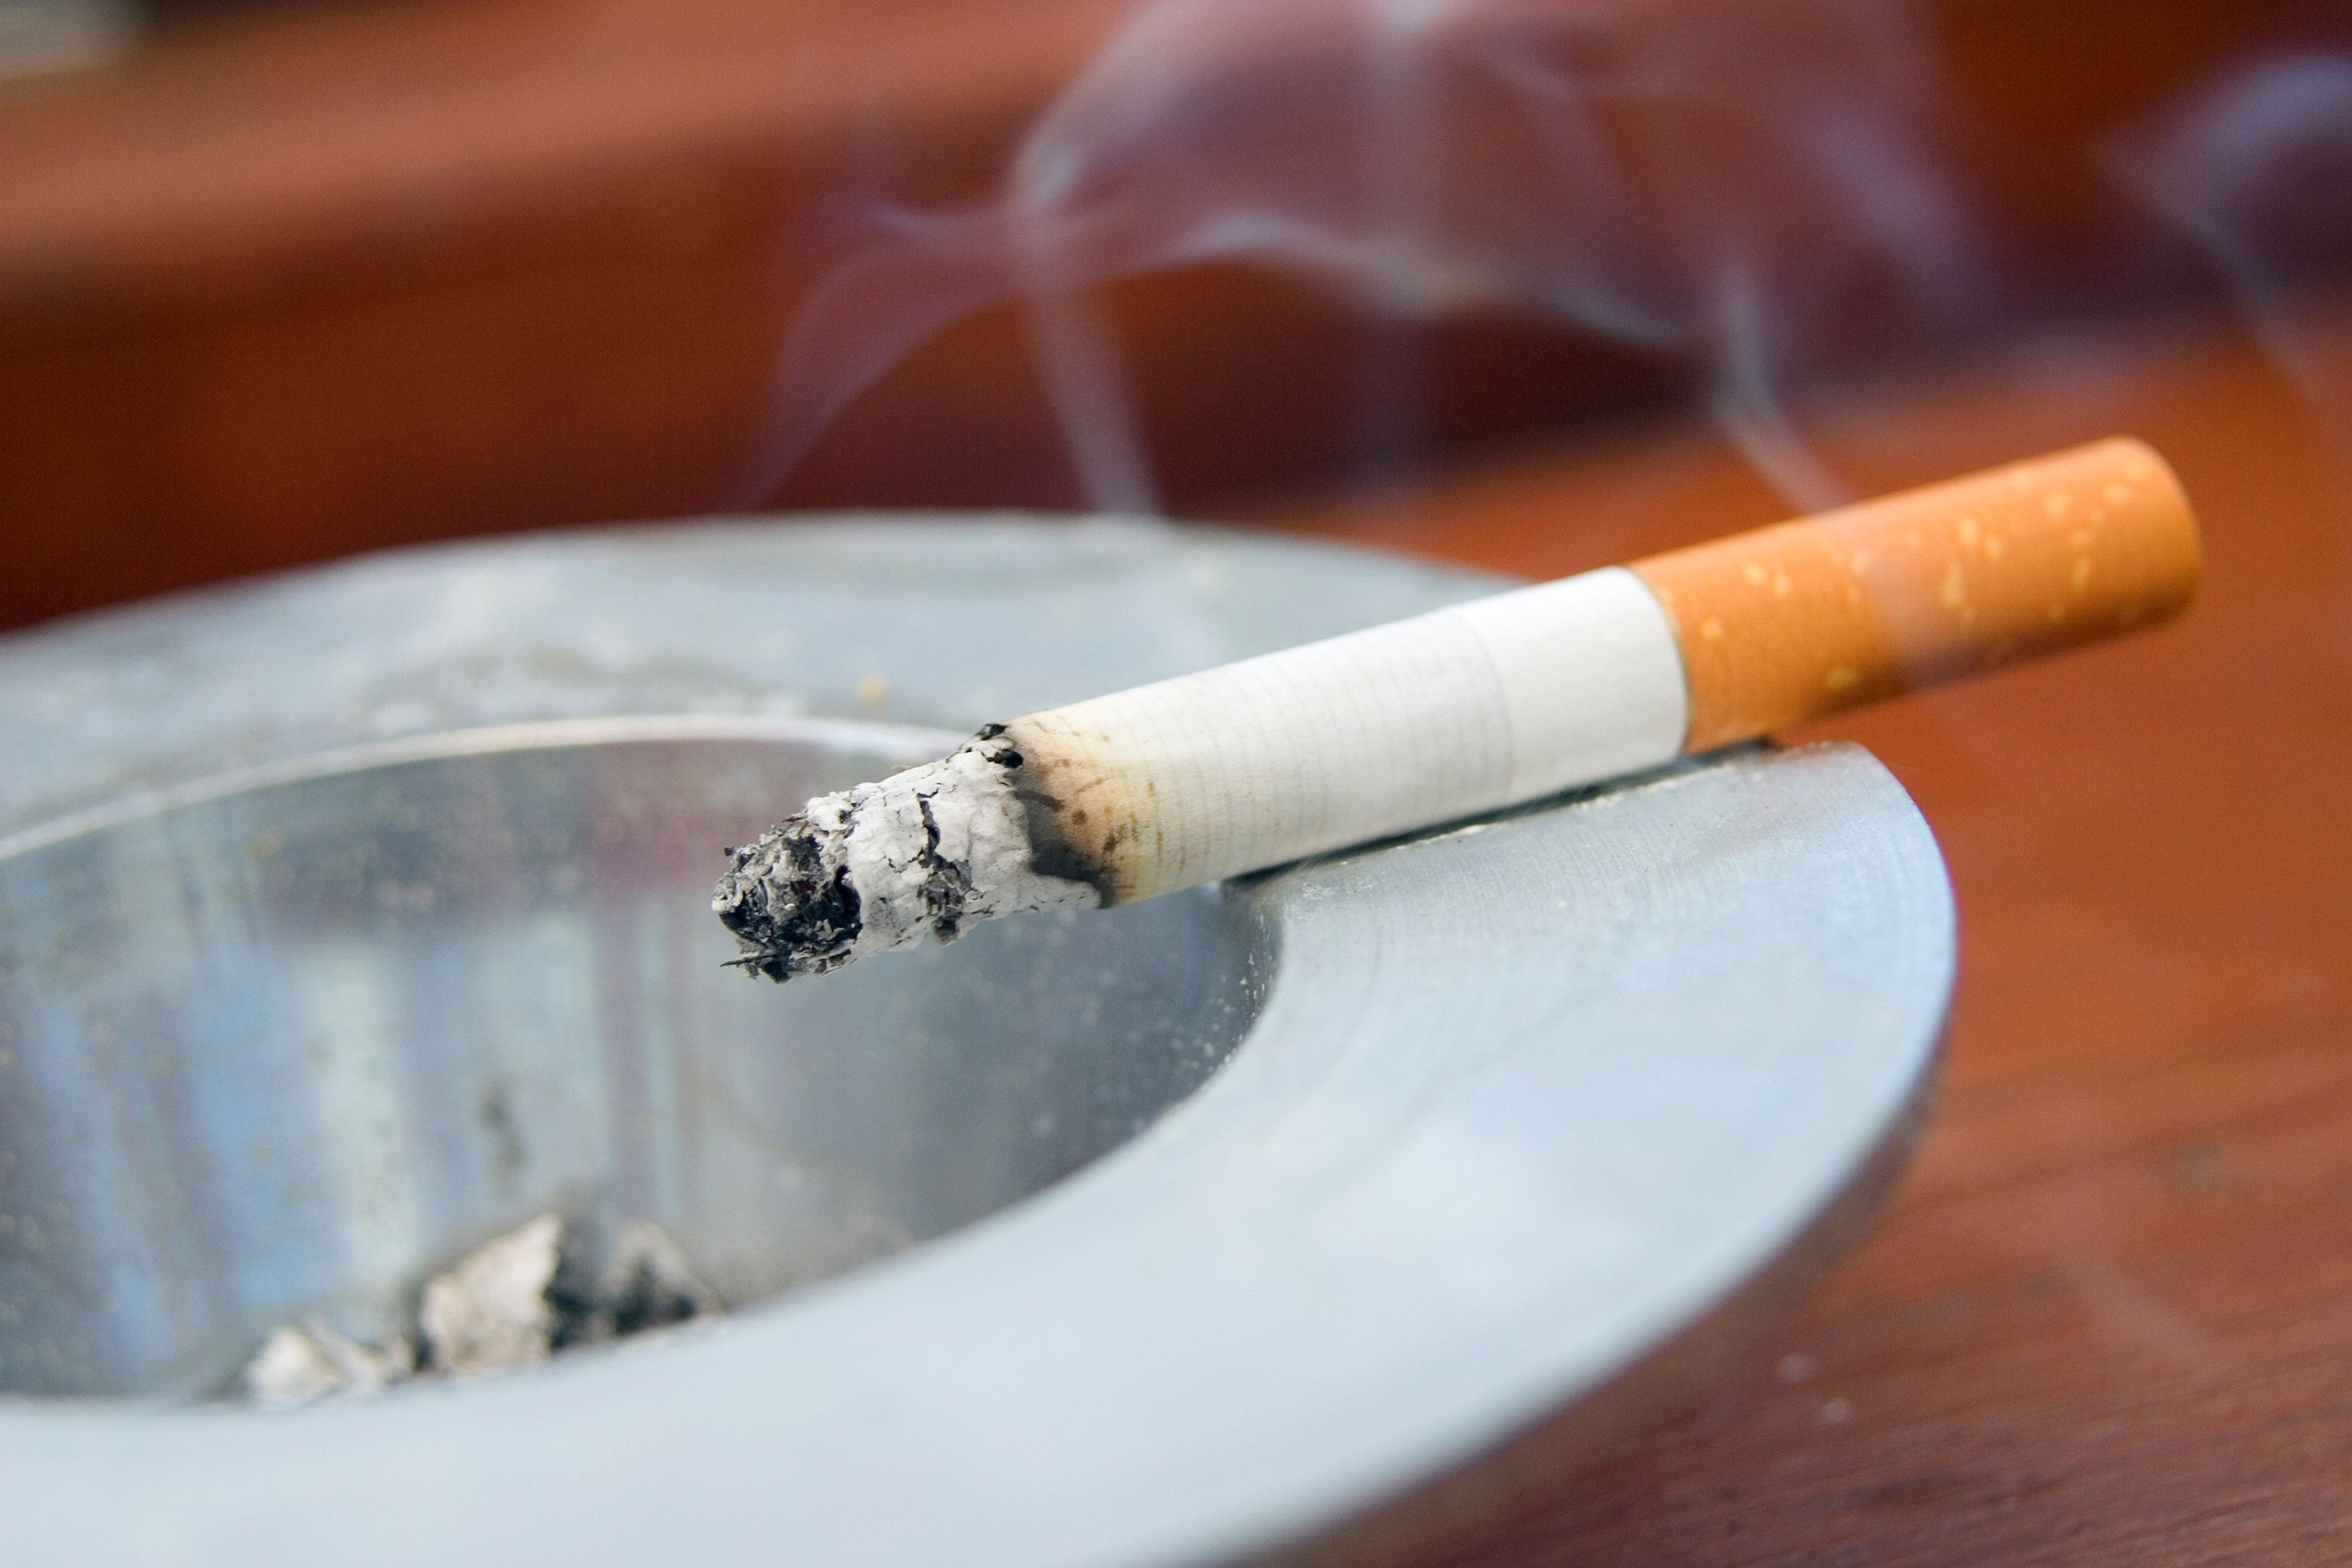 Burning cigarette smoking on ashtray---------------------Similar Images---------------------